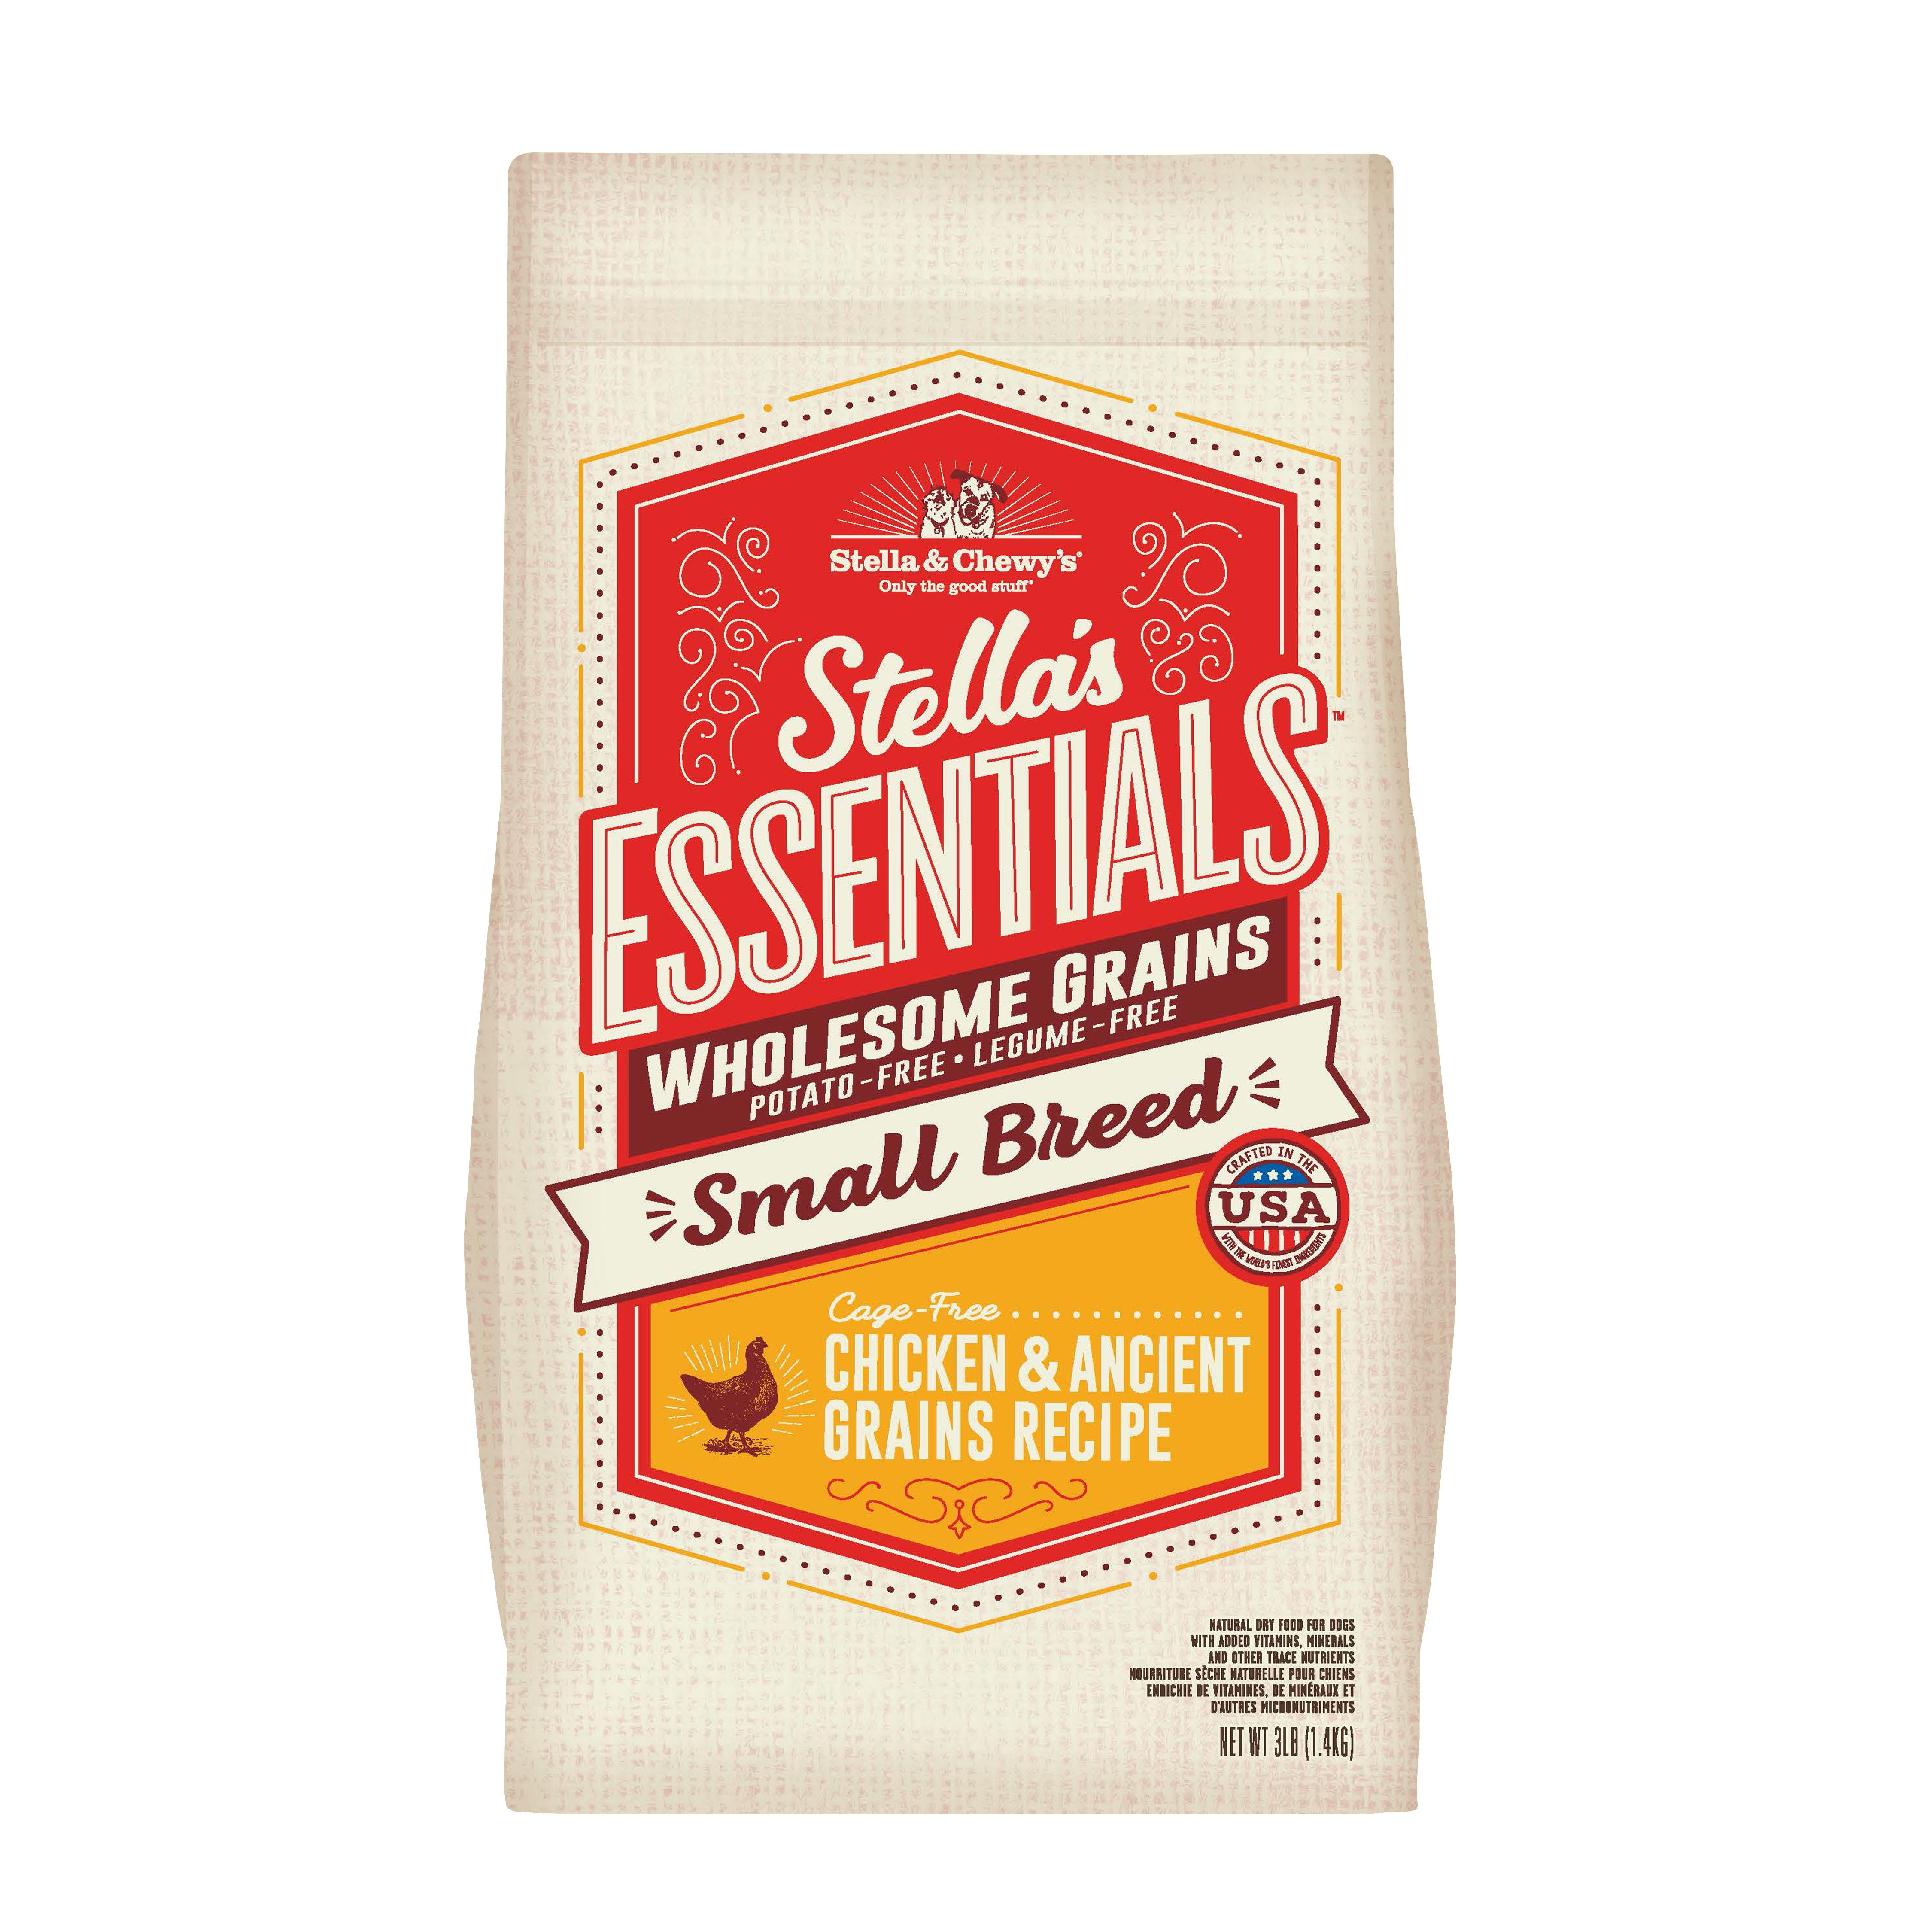 Stella & Chewy's Essentials Wholesome Grains Chicken & Ancient Grains Small Breed Dry Dog Food, 3-lb